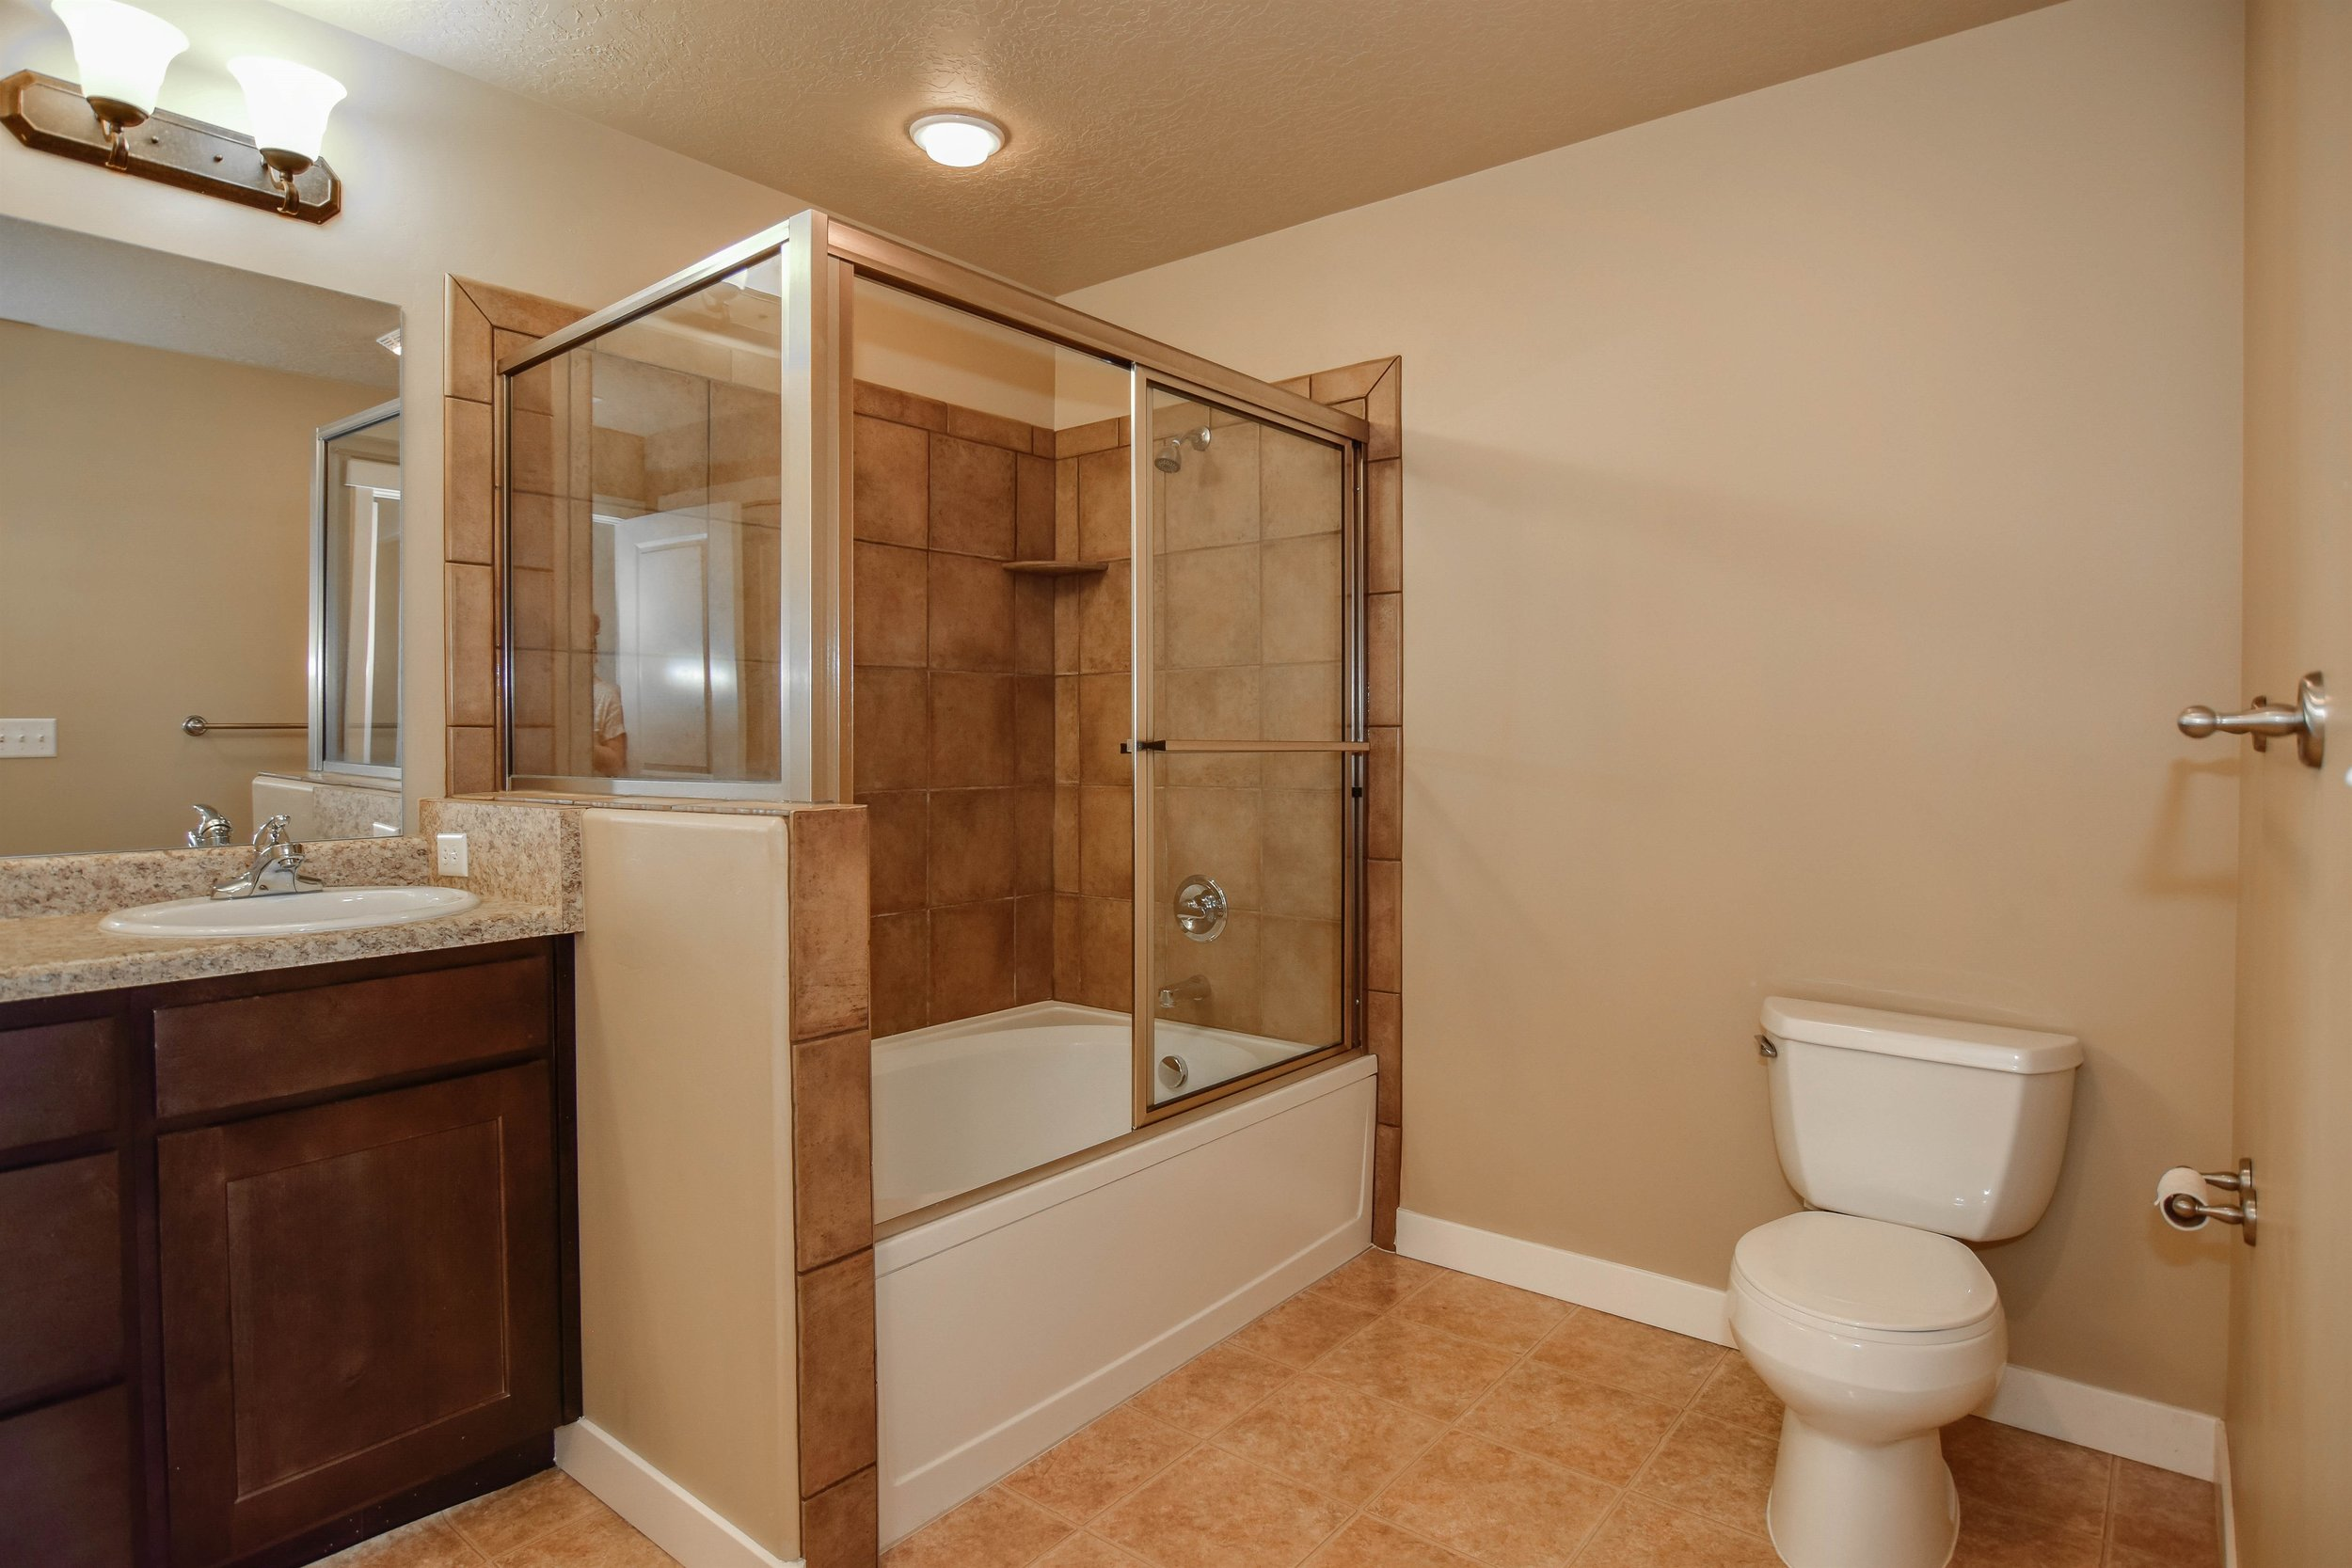 017_Master Bathroom.jpg